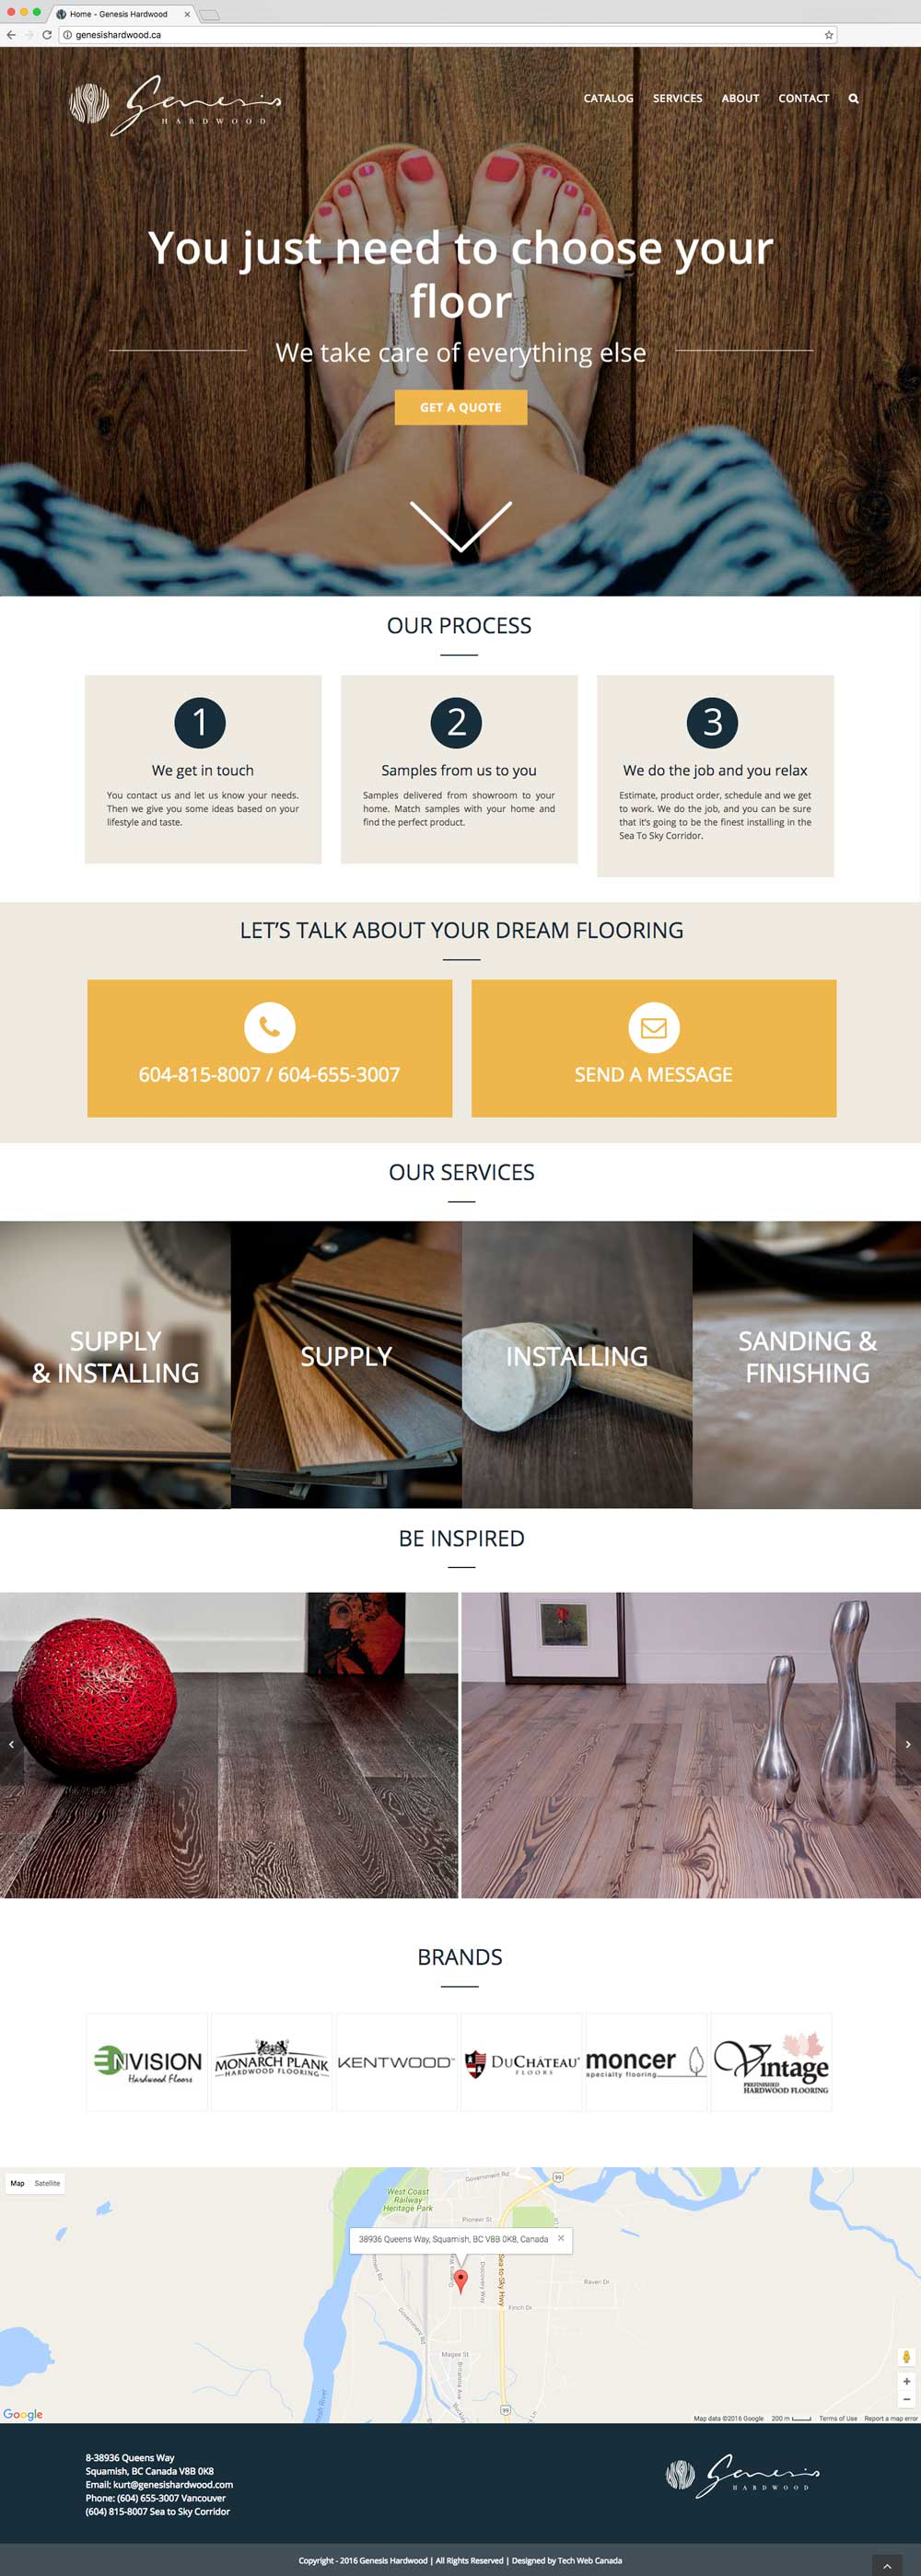 Genesis Hardwood Home Page, designed by Tech-Web Canada